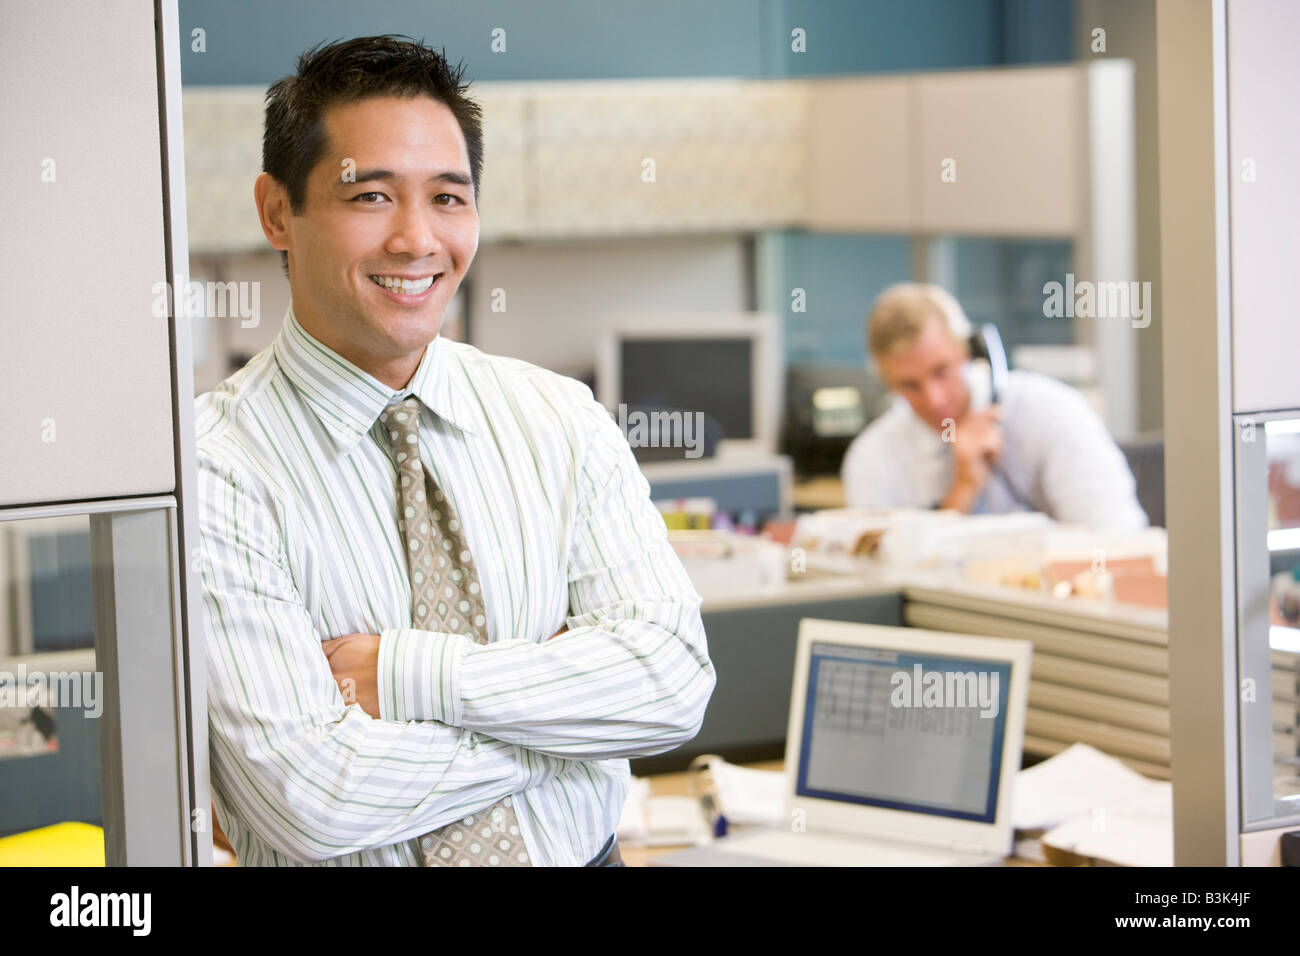 Businessman standing in cubicle smiling - Stock Image